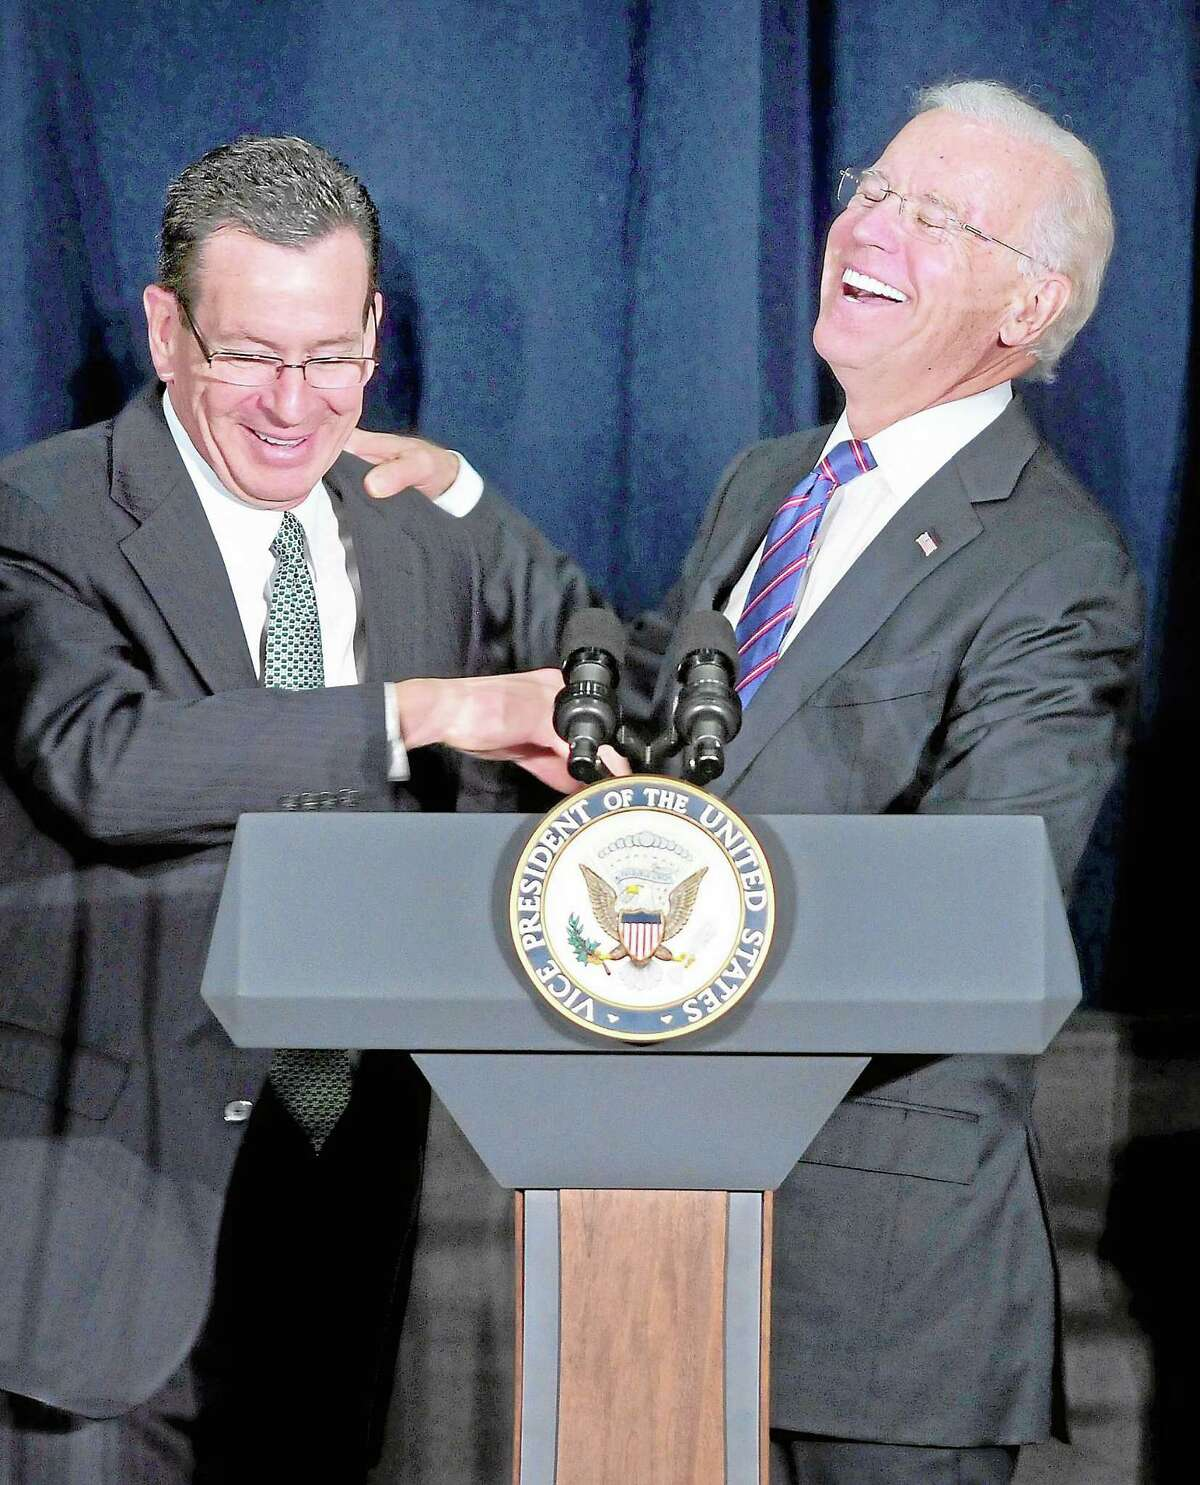 Gov. Dannel Malloy (left) jokes with Vice President Joe Biden (right) as he begins to speak at a Conference on Gun Violence at the Campus Center Ballroom at Western Connecticut State University in Danbury on 2/21/2013. Malloy told the audience that Biden would mention his grandfather during his speech and when he did the audience laughed at the prediction coming true. ¬ Photo by Arnold Gold/New Haven Register